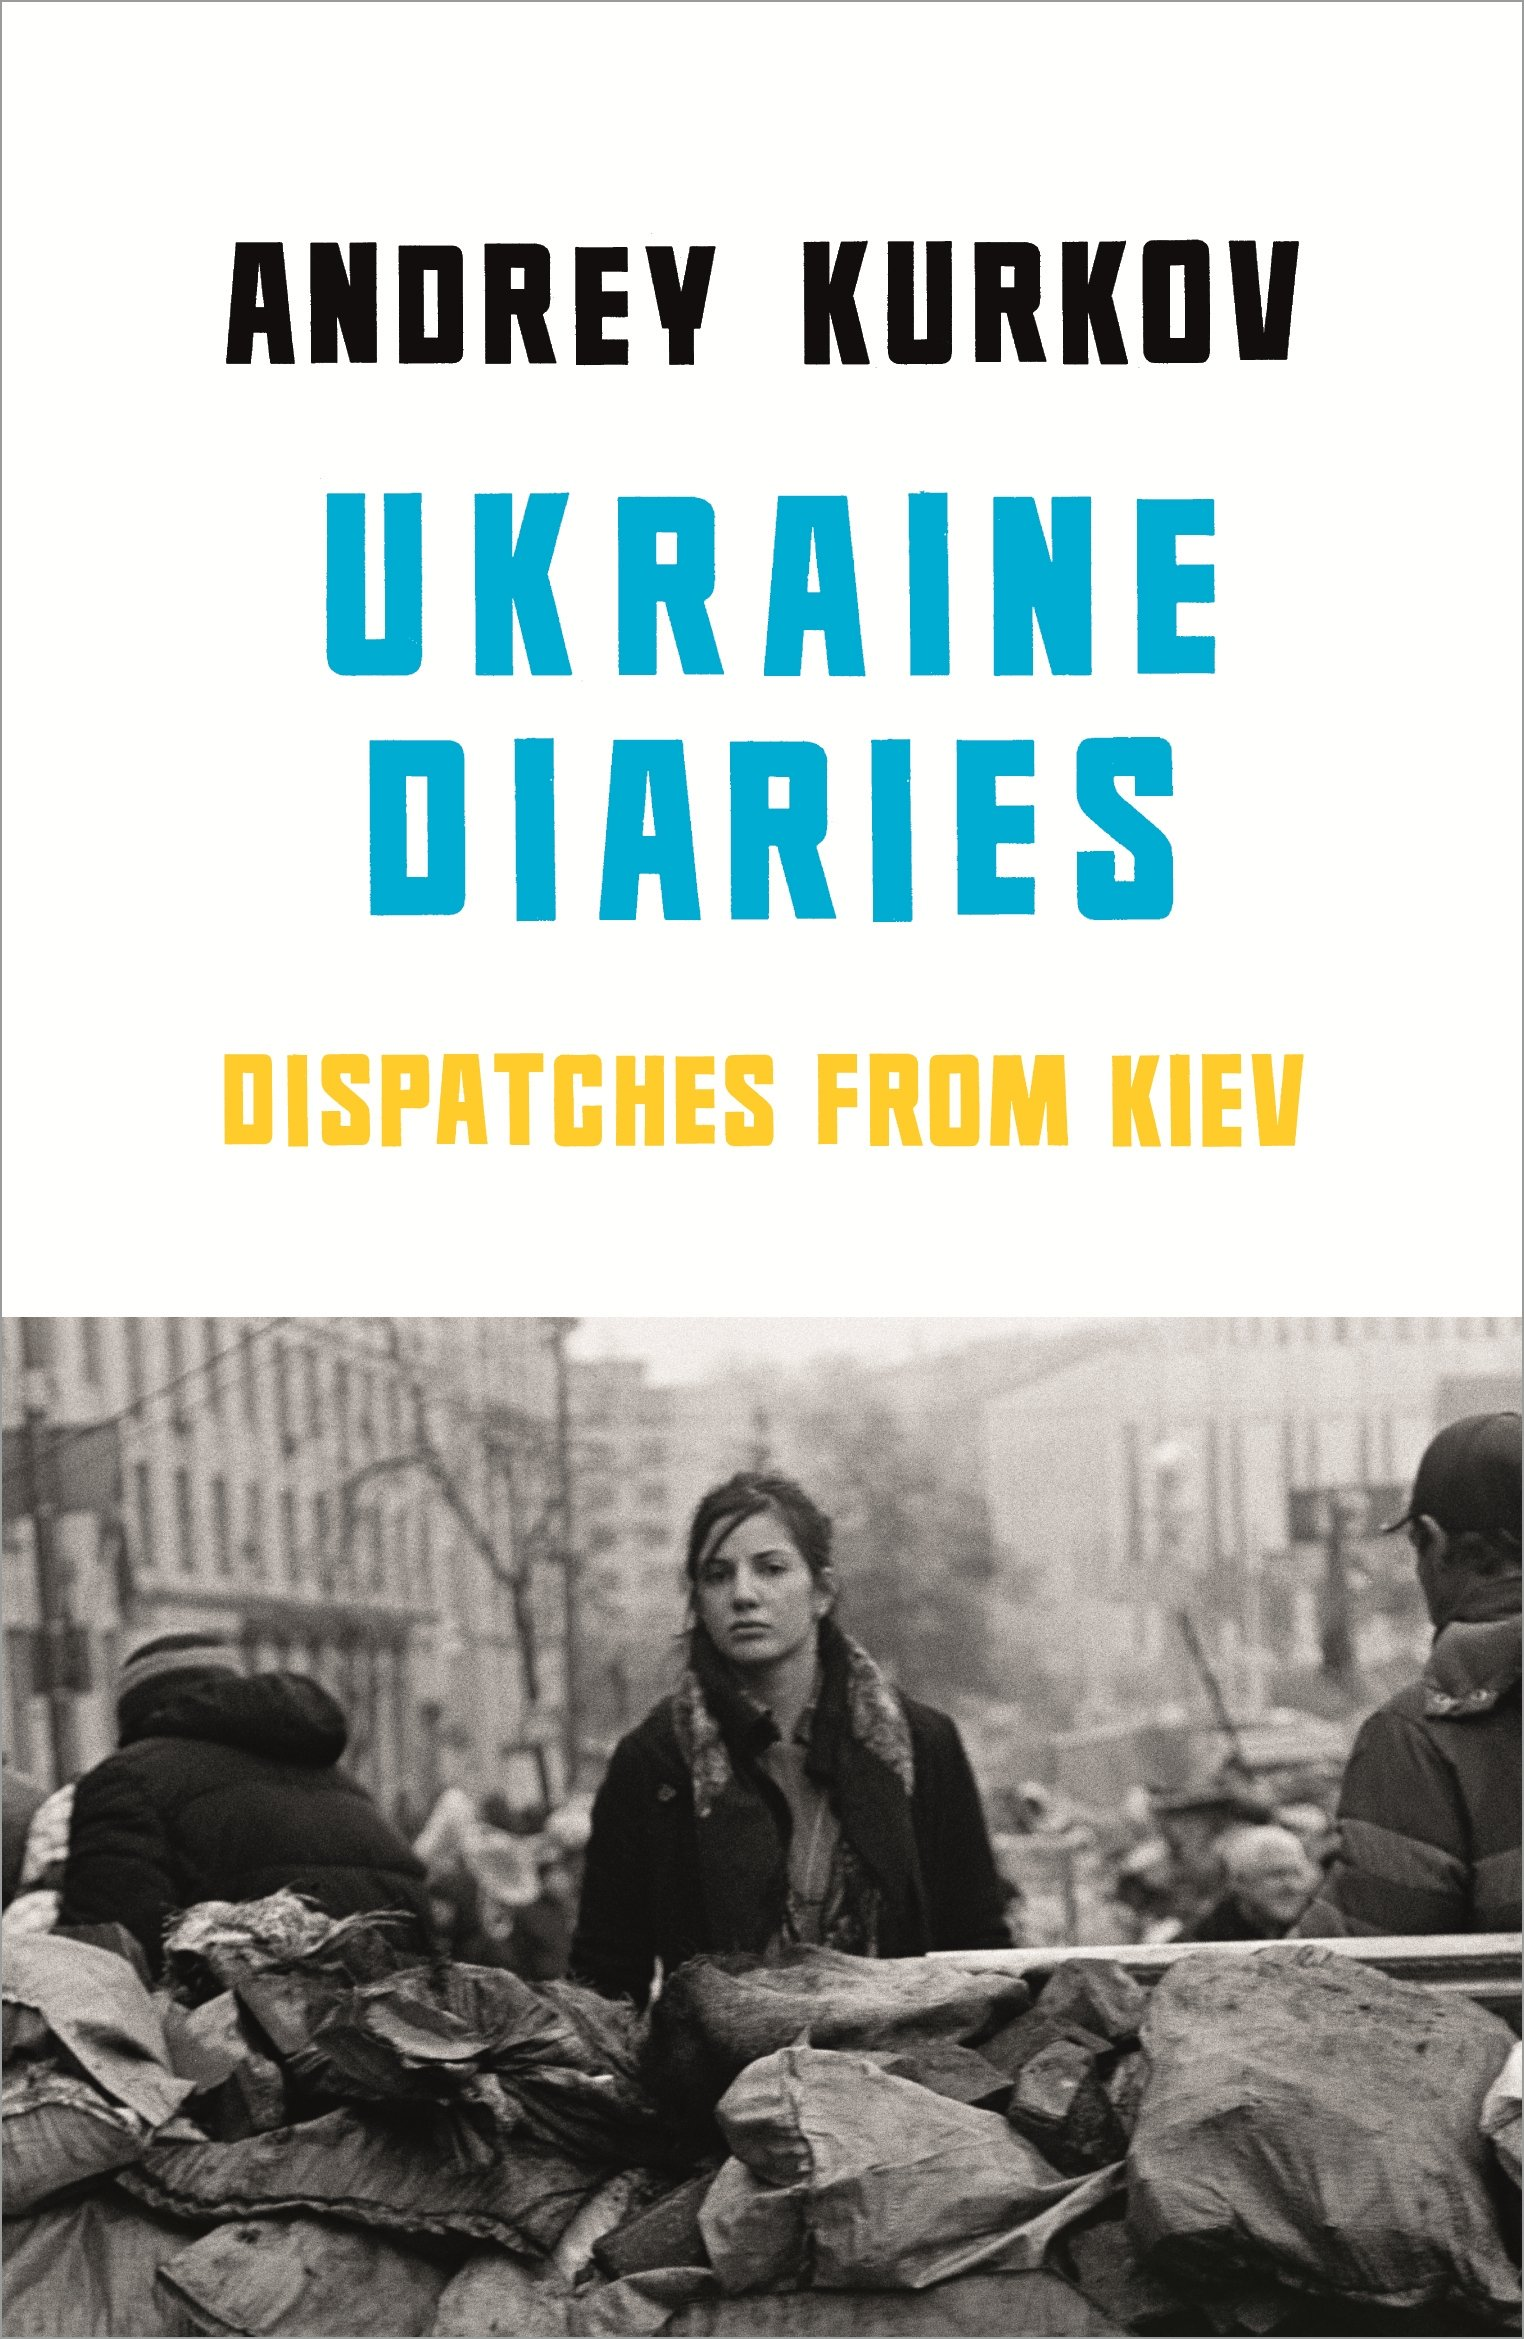 In Ukraine, the book is withdrawn from sale 26